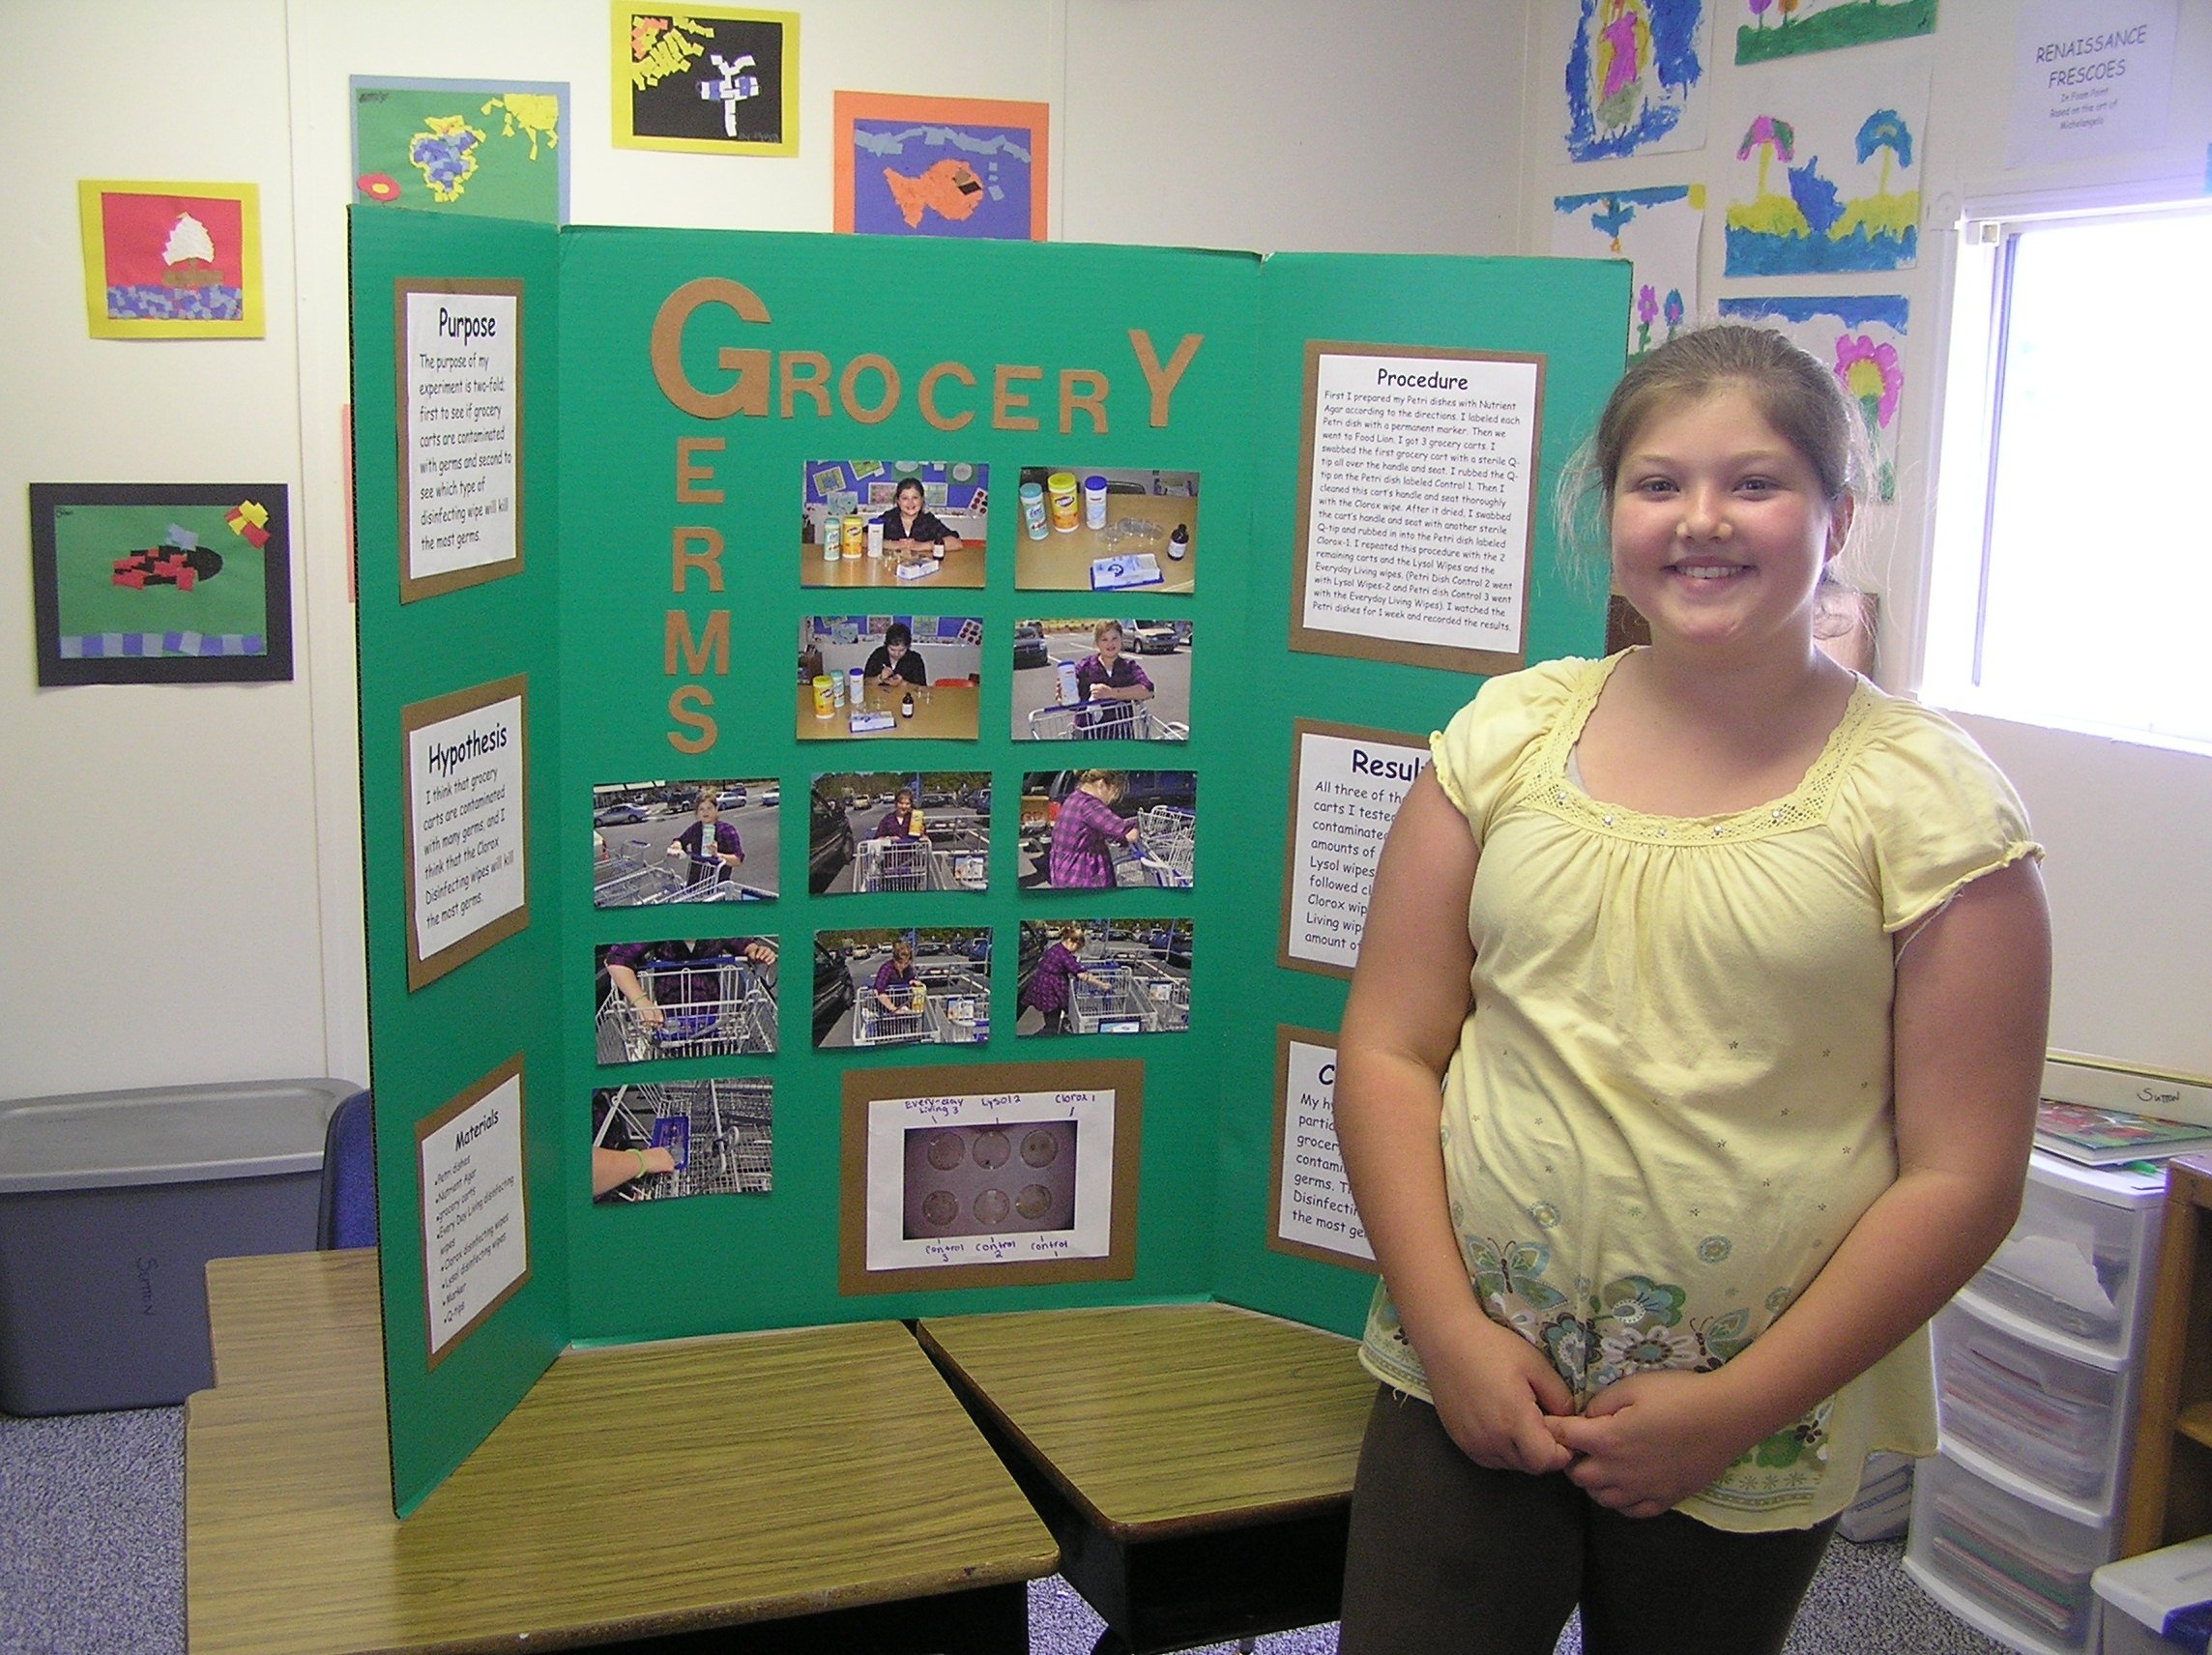 10 Beautiful Science Fair Ideas 5Th Grade grocery germs whats on that cart handle science fair 14 2020